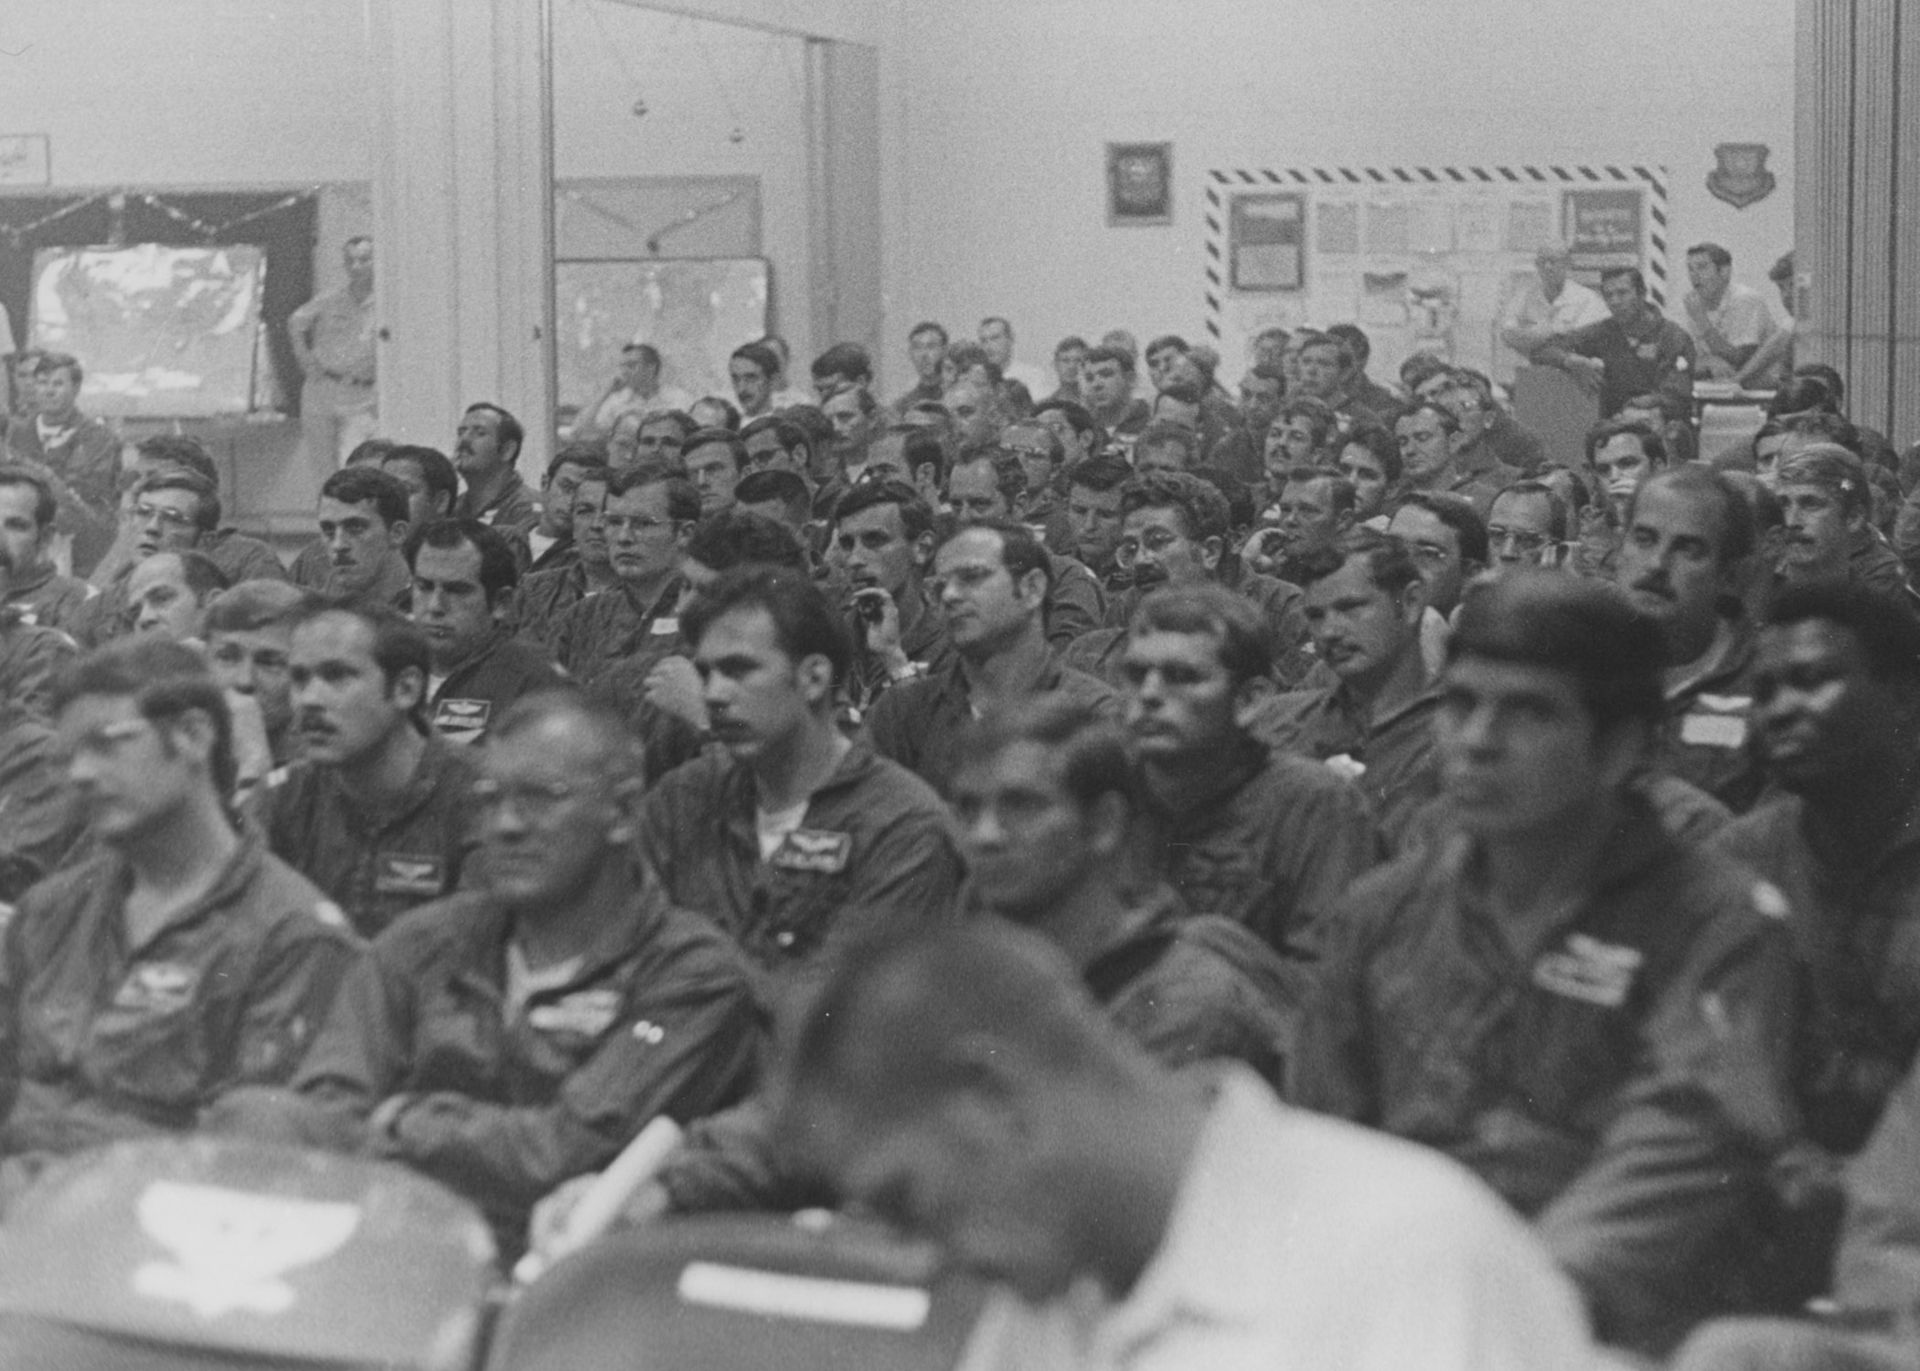 B-52 bombing crews at Andersen Air Force Base, Guam being briefed on the operation.